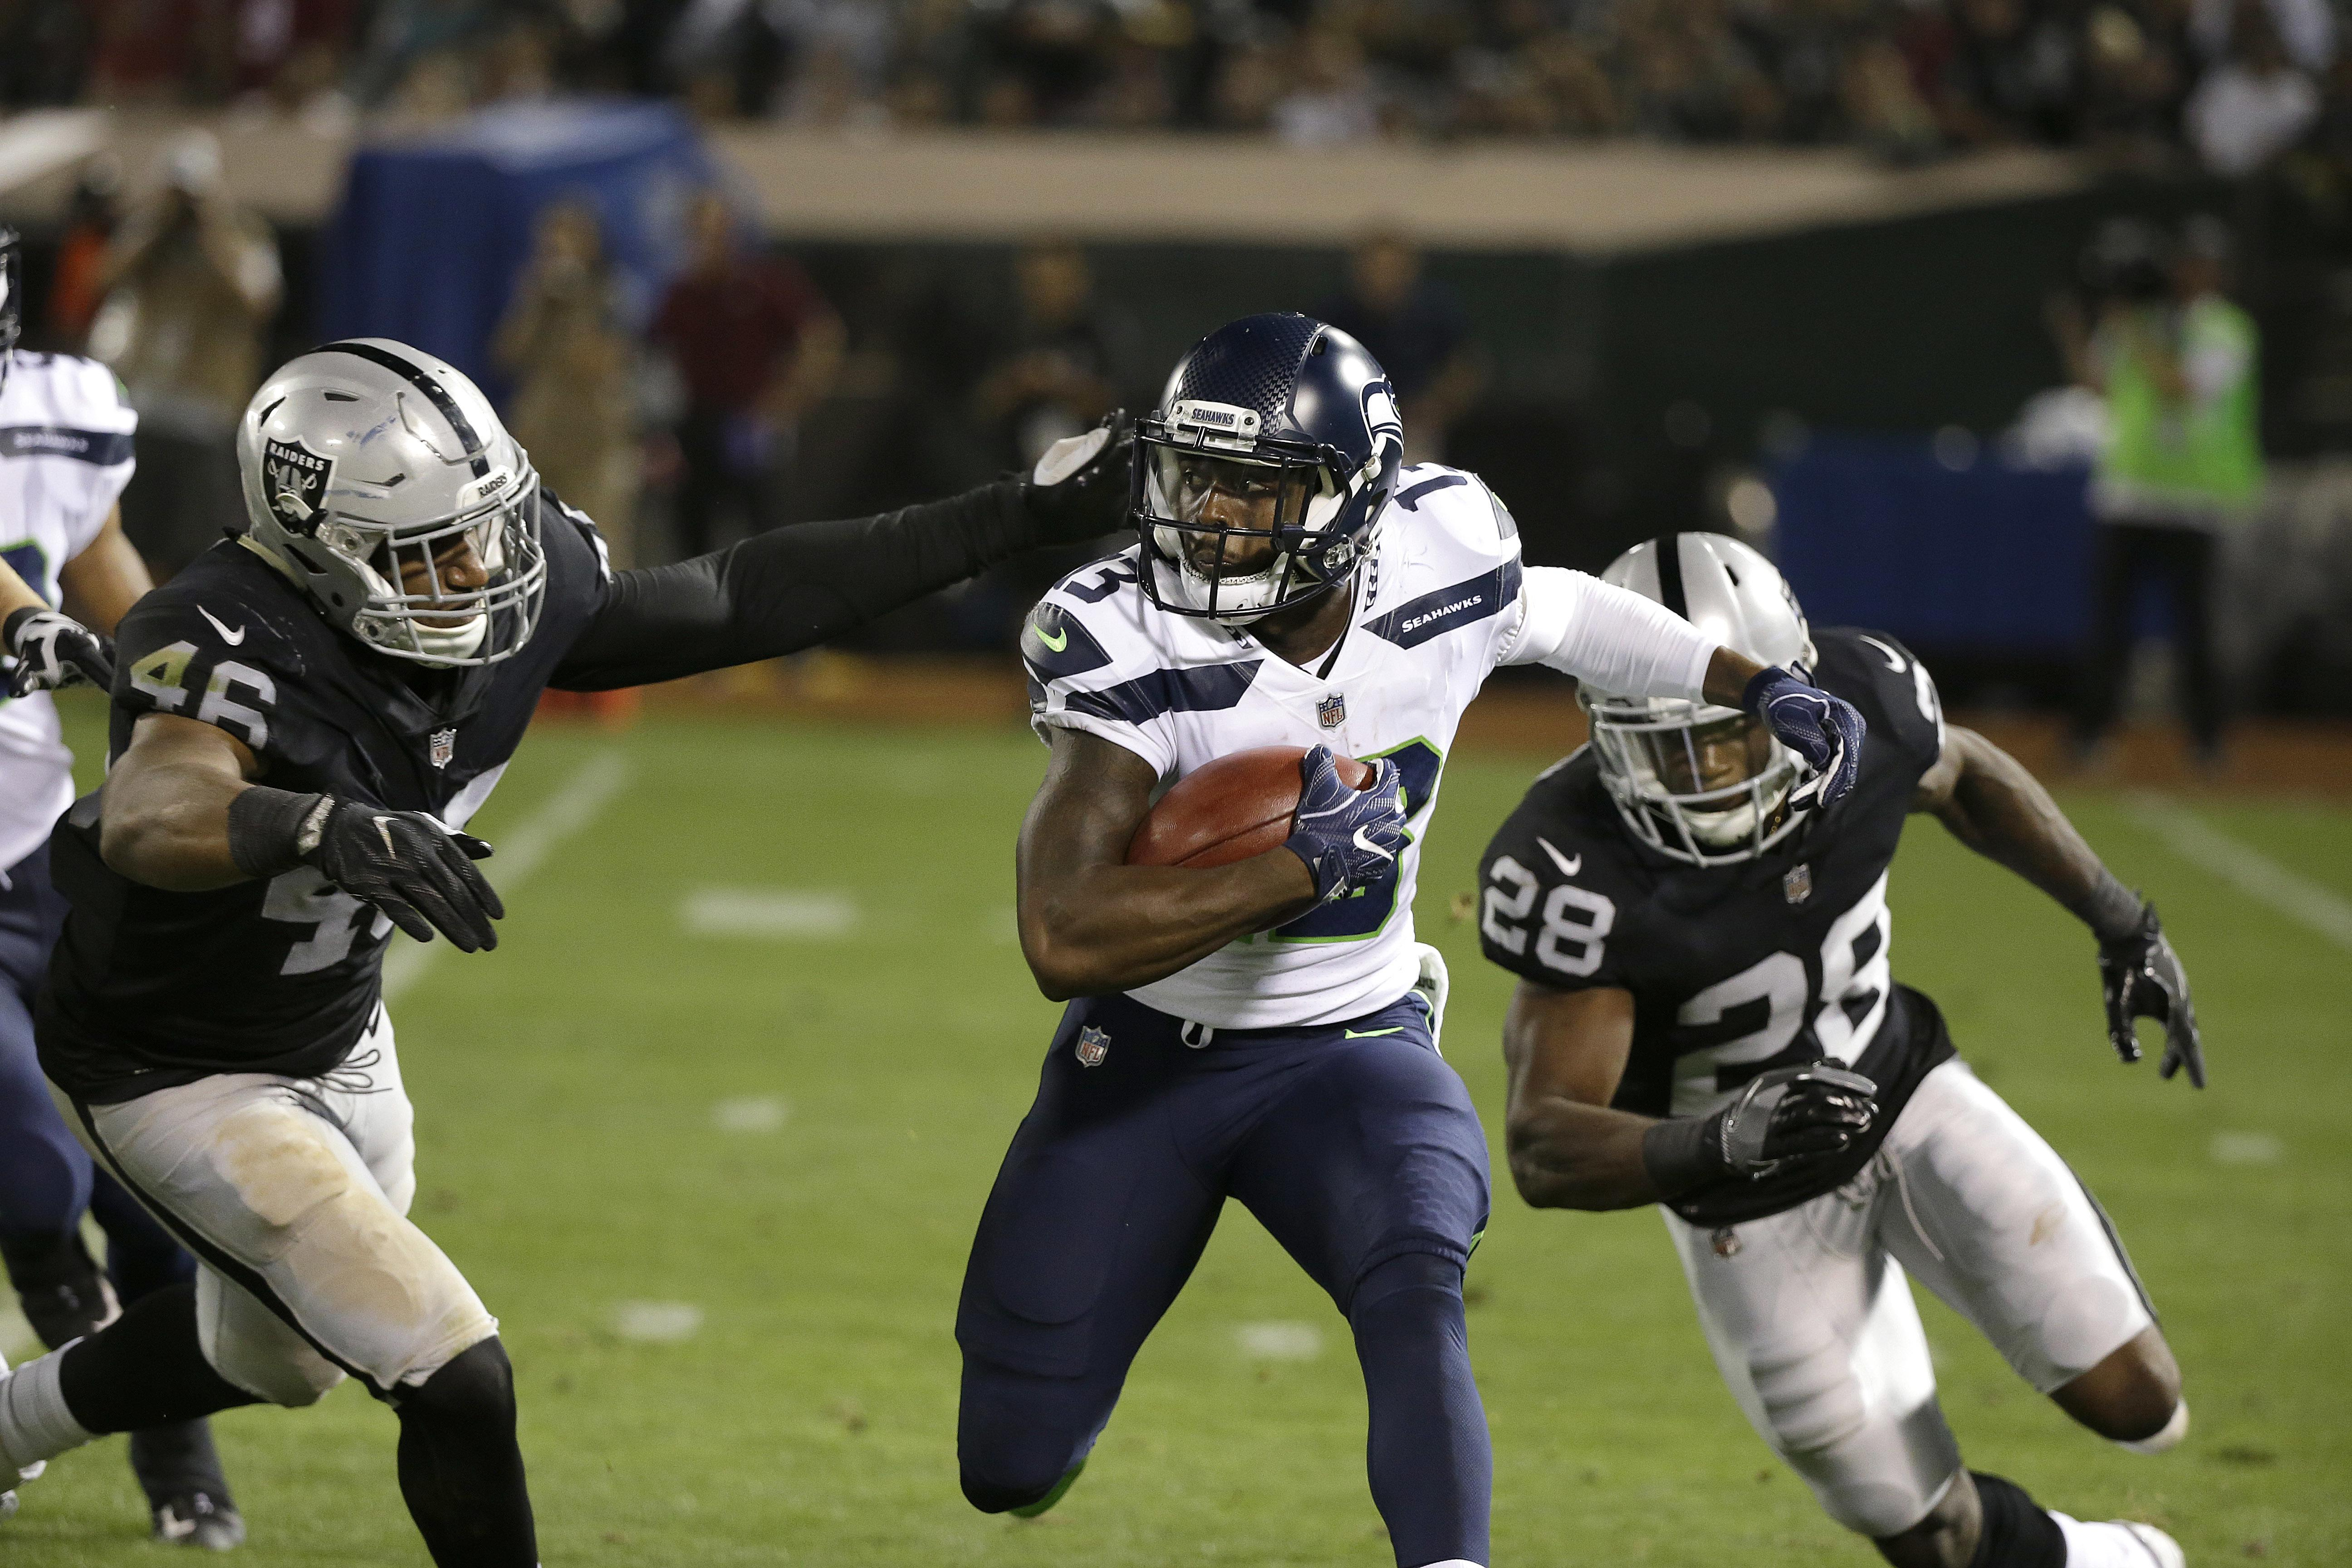 Seahawks to face Raiders in first NFL game at London s Tottenham ... 472292e69